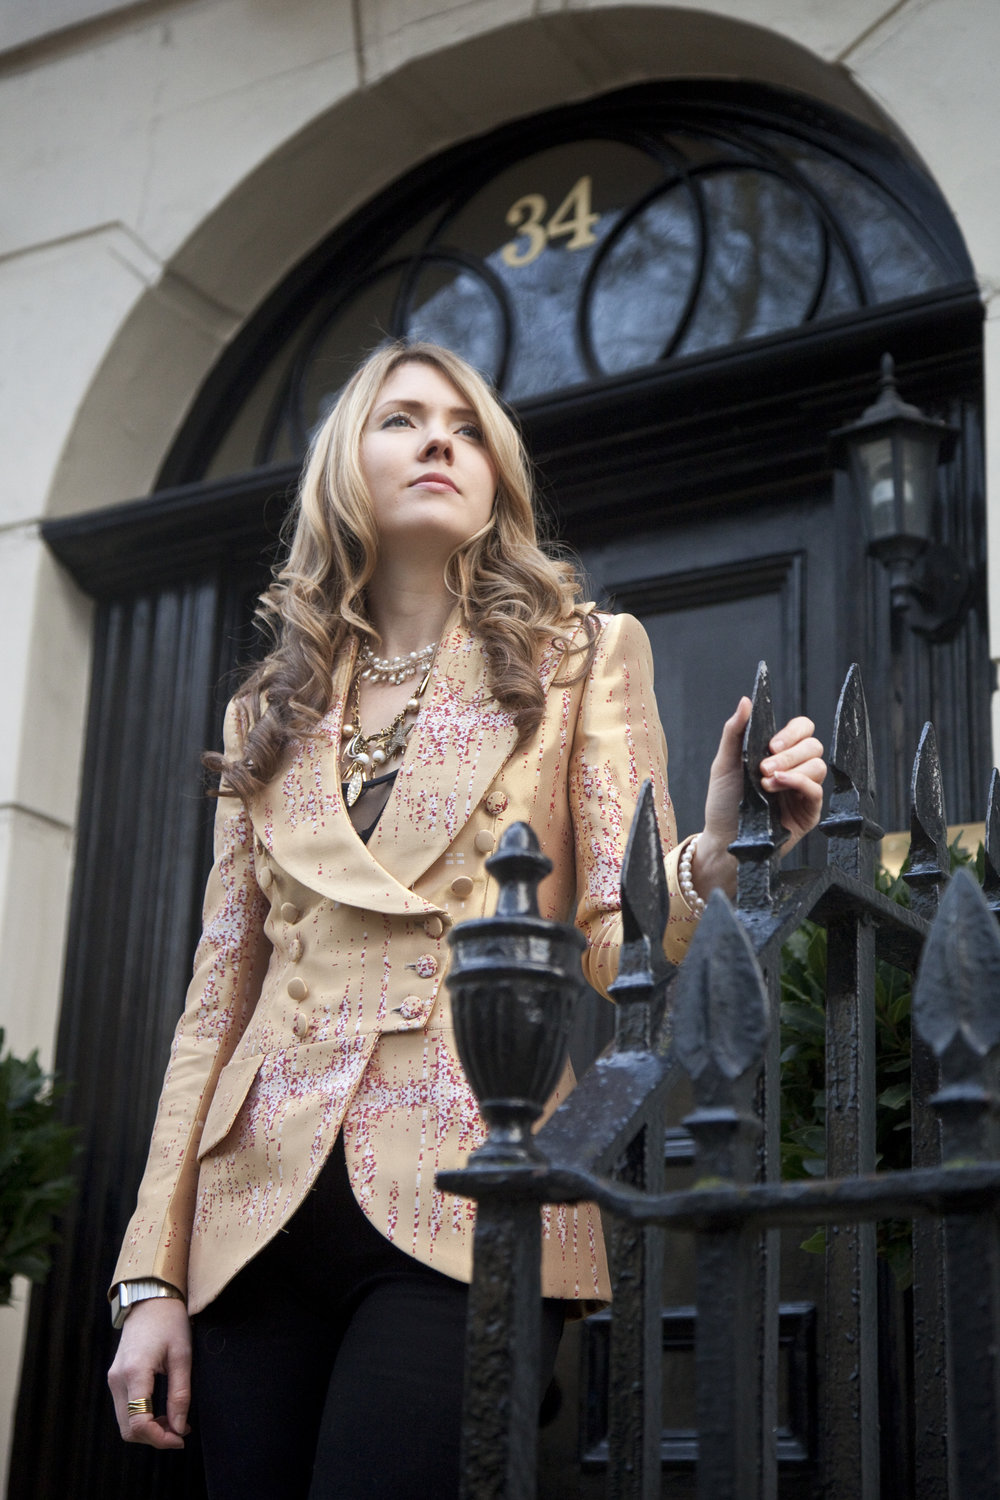 03. Beatie Wolfe - Musical Jacket outside 34 Montagu Square - Photo by Ollie Smallwood.jpg